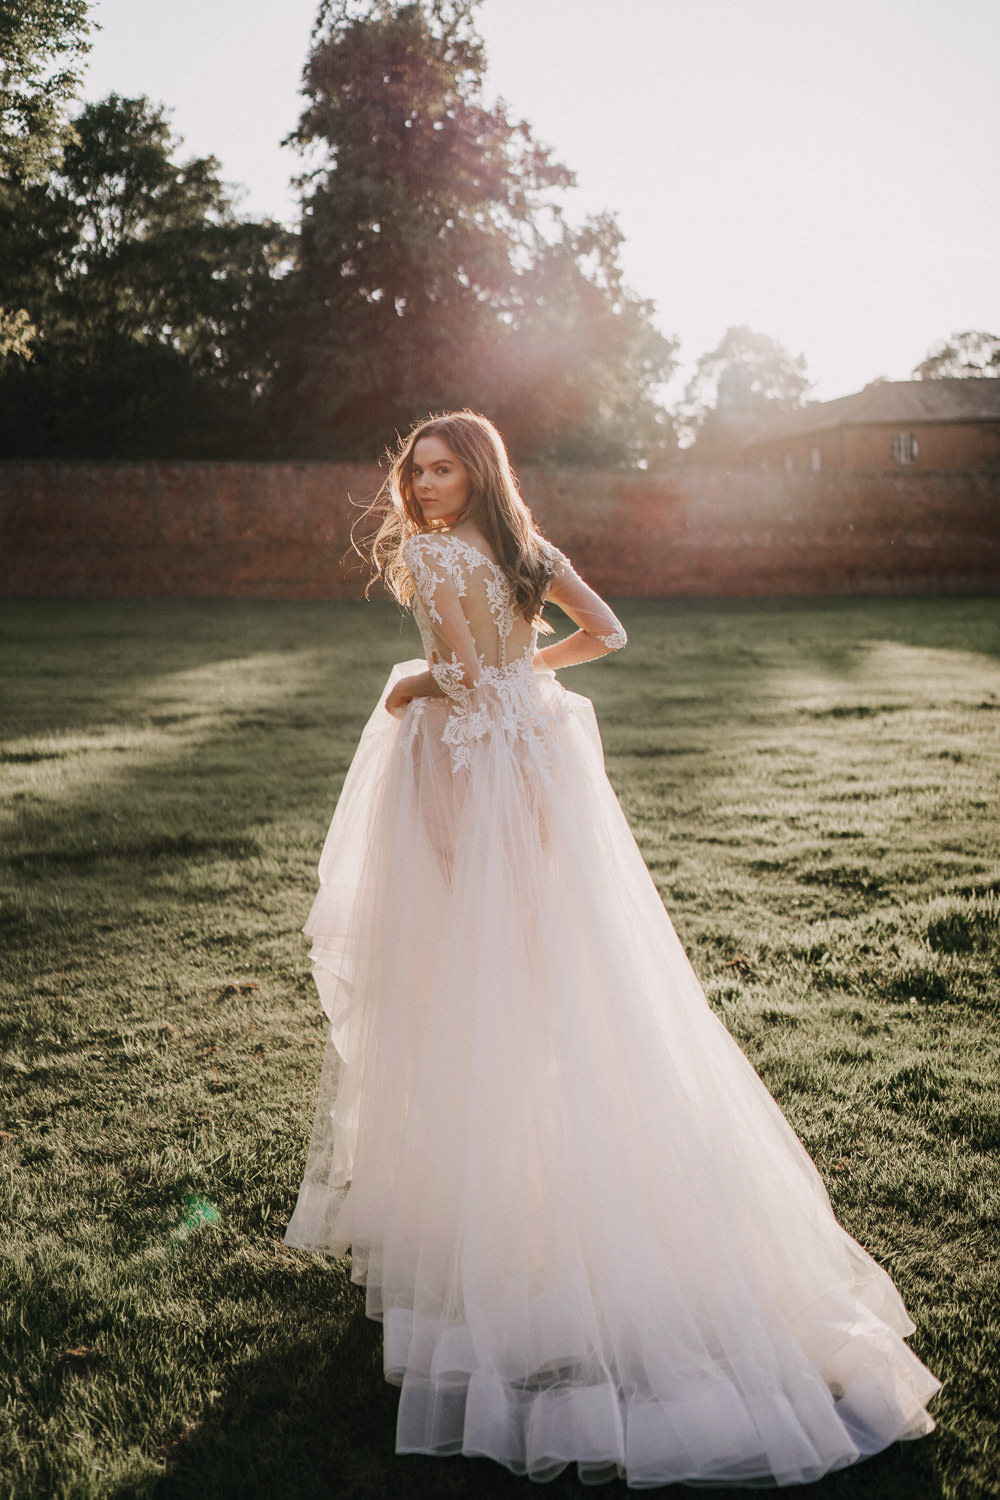 Bride Bridal Dress Gown Lace Sleeves Tulle Skirt Naked Tipi Wedding Ideas Holly Rose Stones